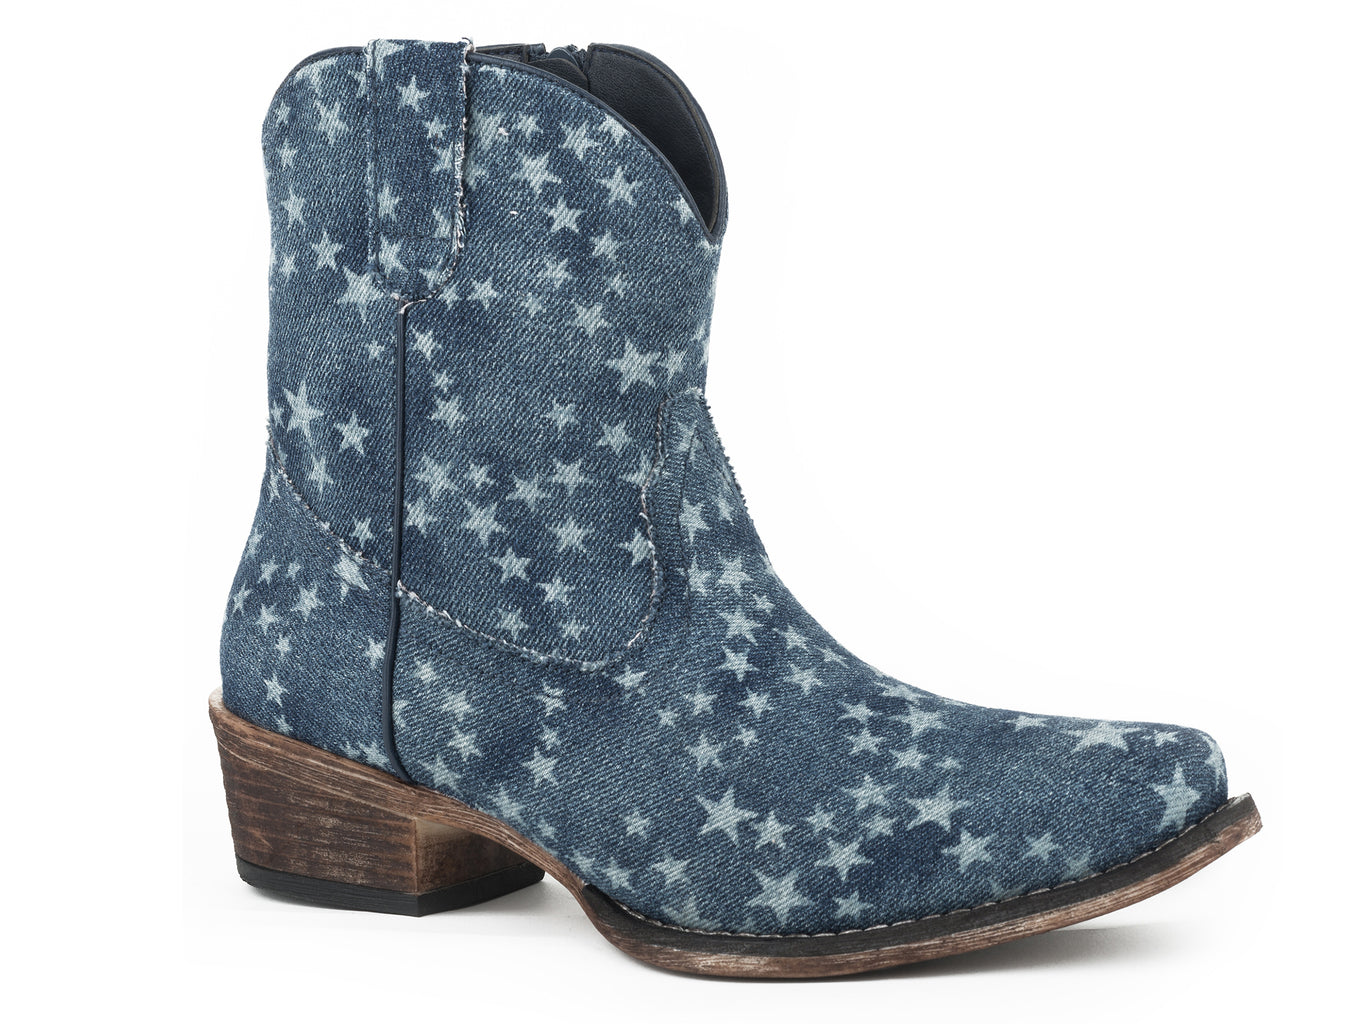 Roper Womens All Over Stone Washed Denim Boots - Roper - Breeches.com